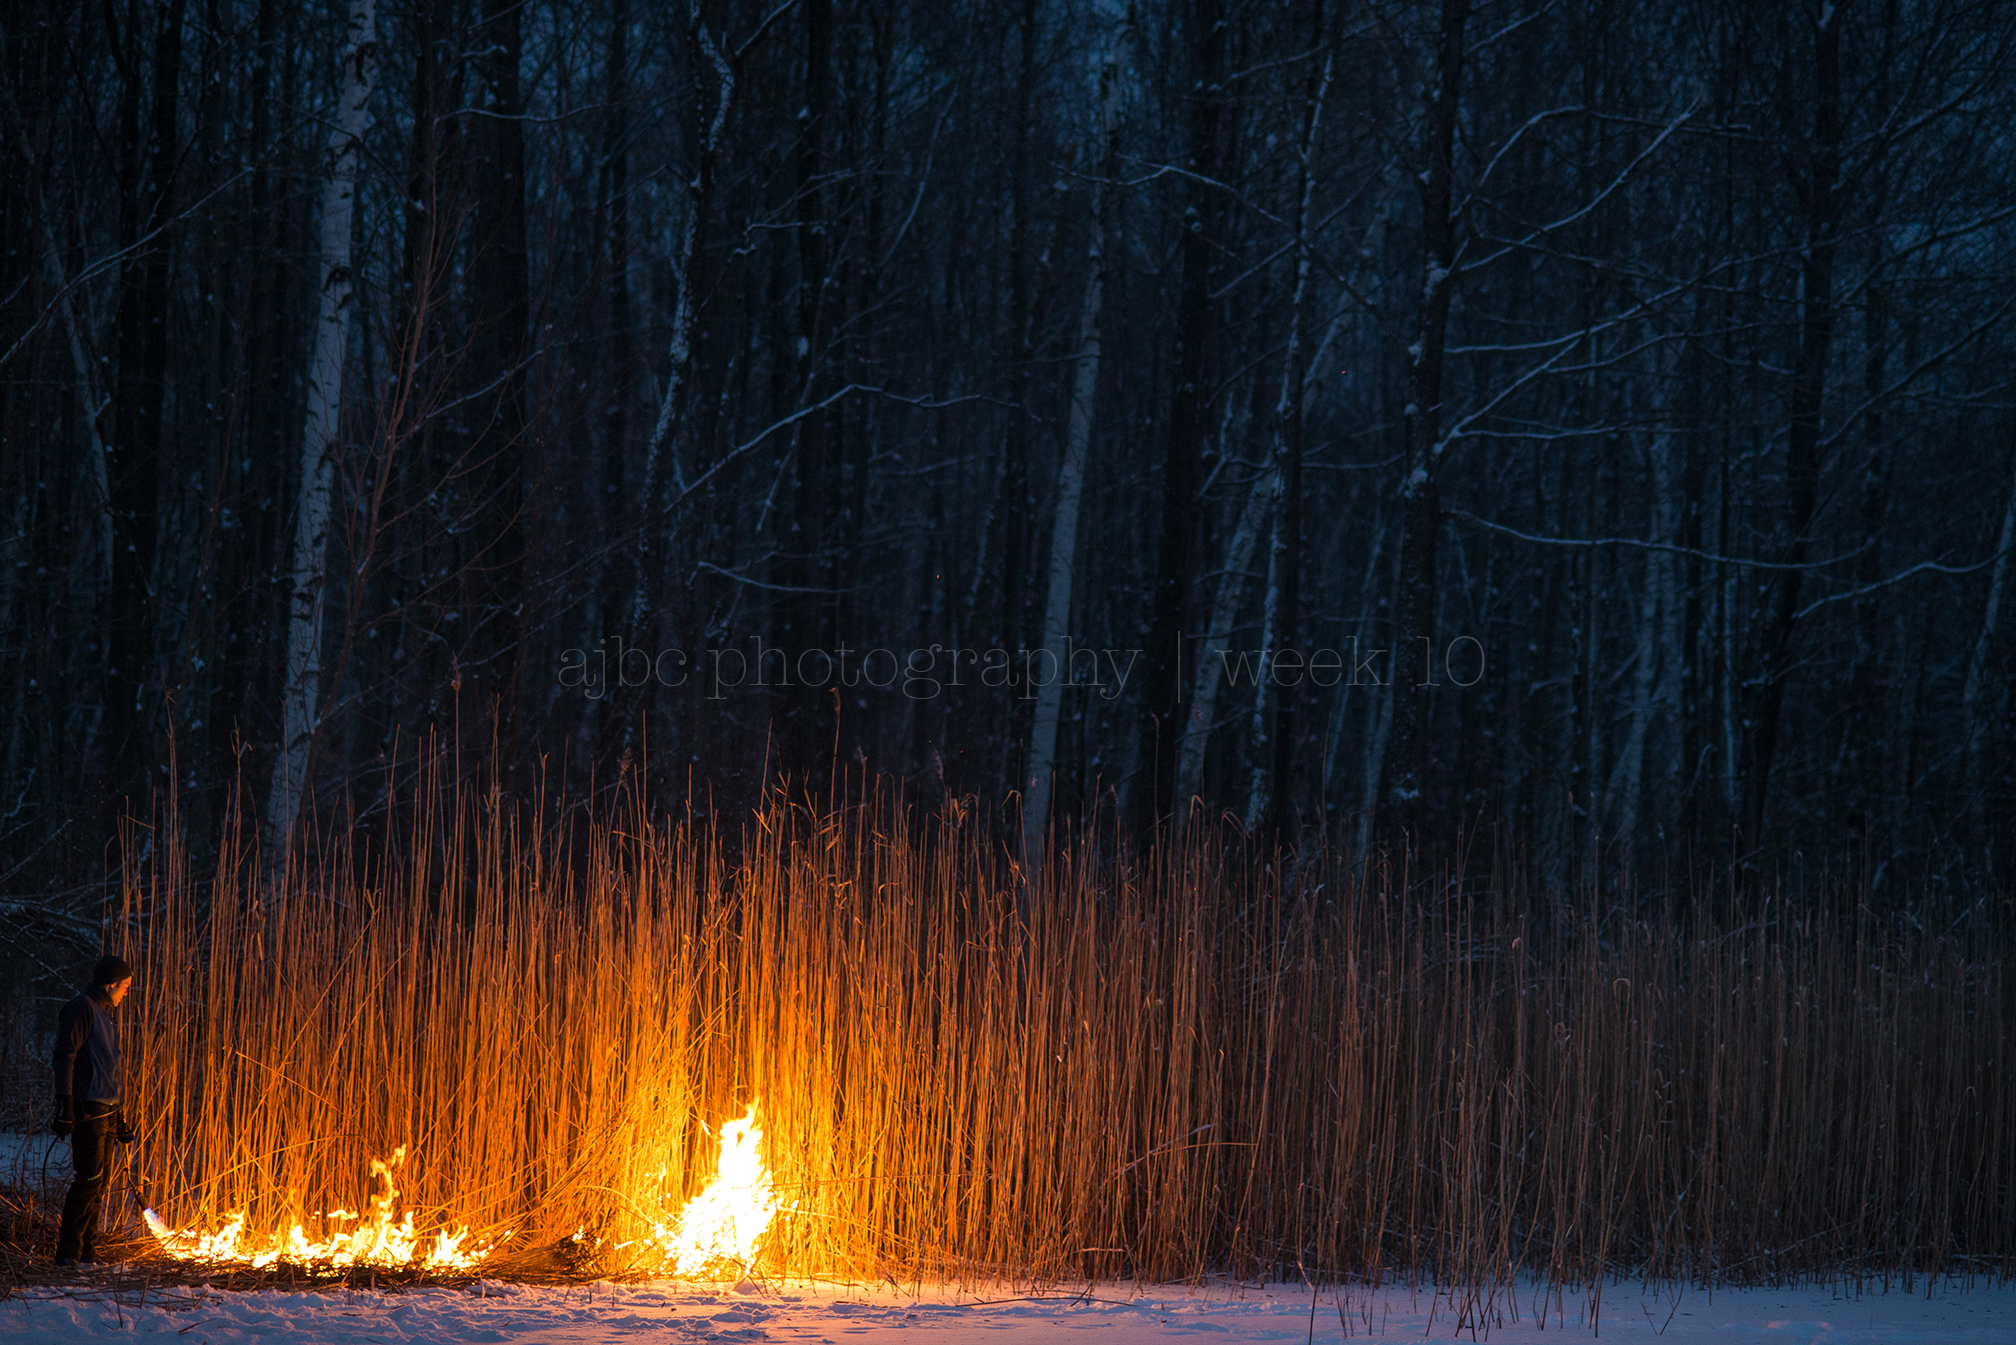 country pond photographer photography documentary fire